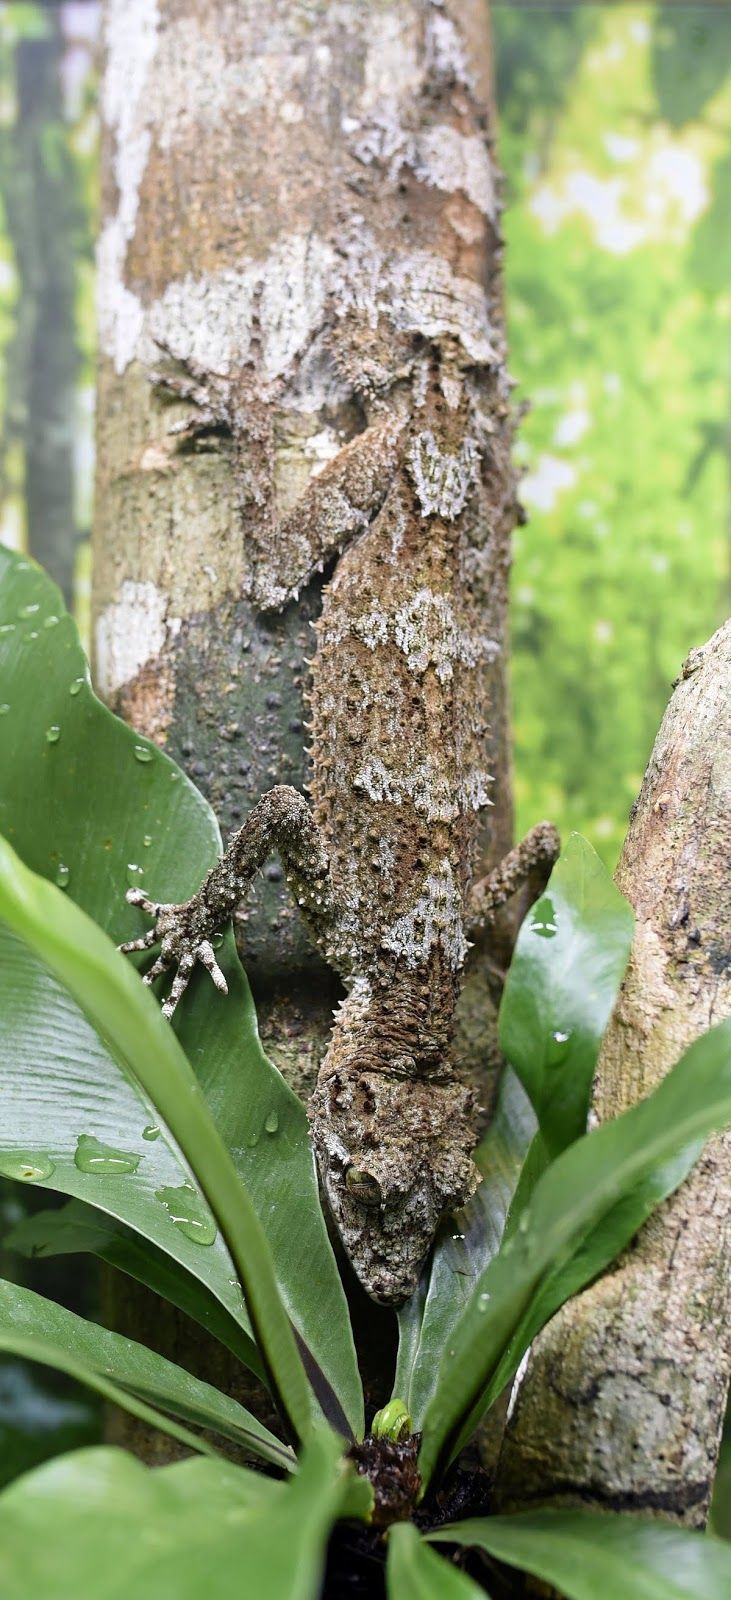 Leaf-tail gecko wonderfully camouflaged.